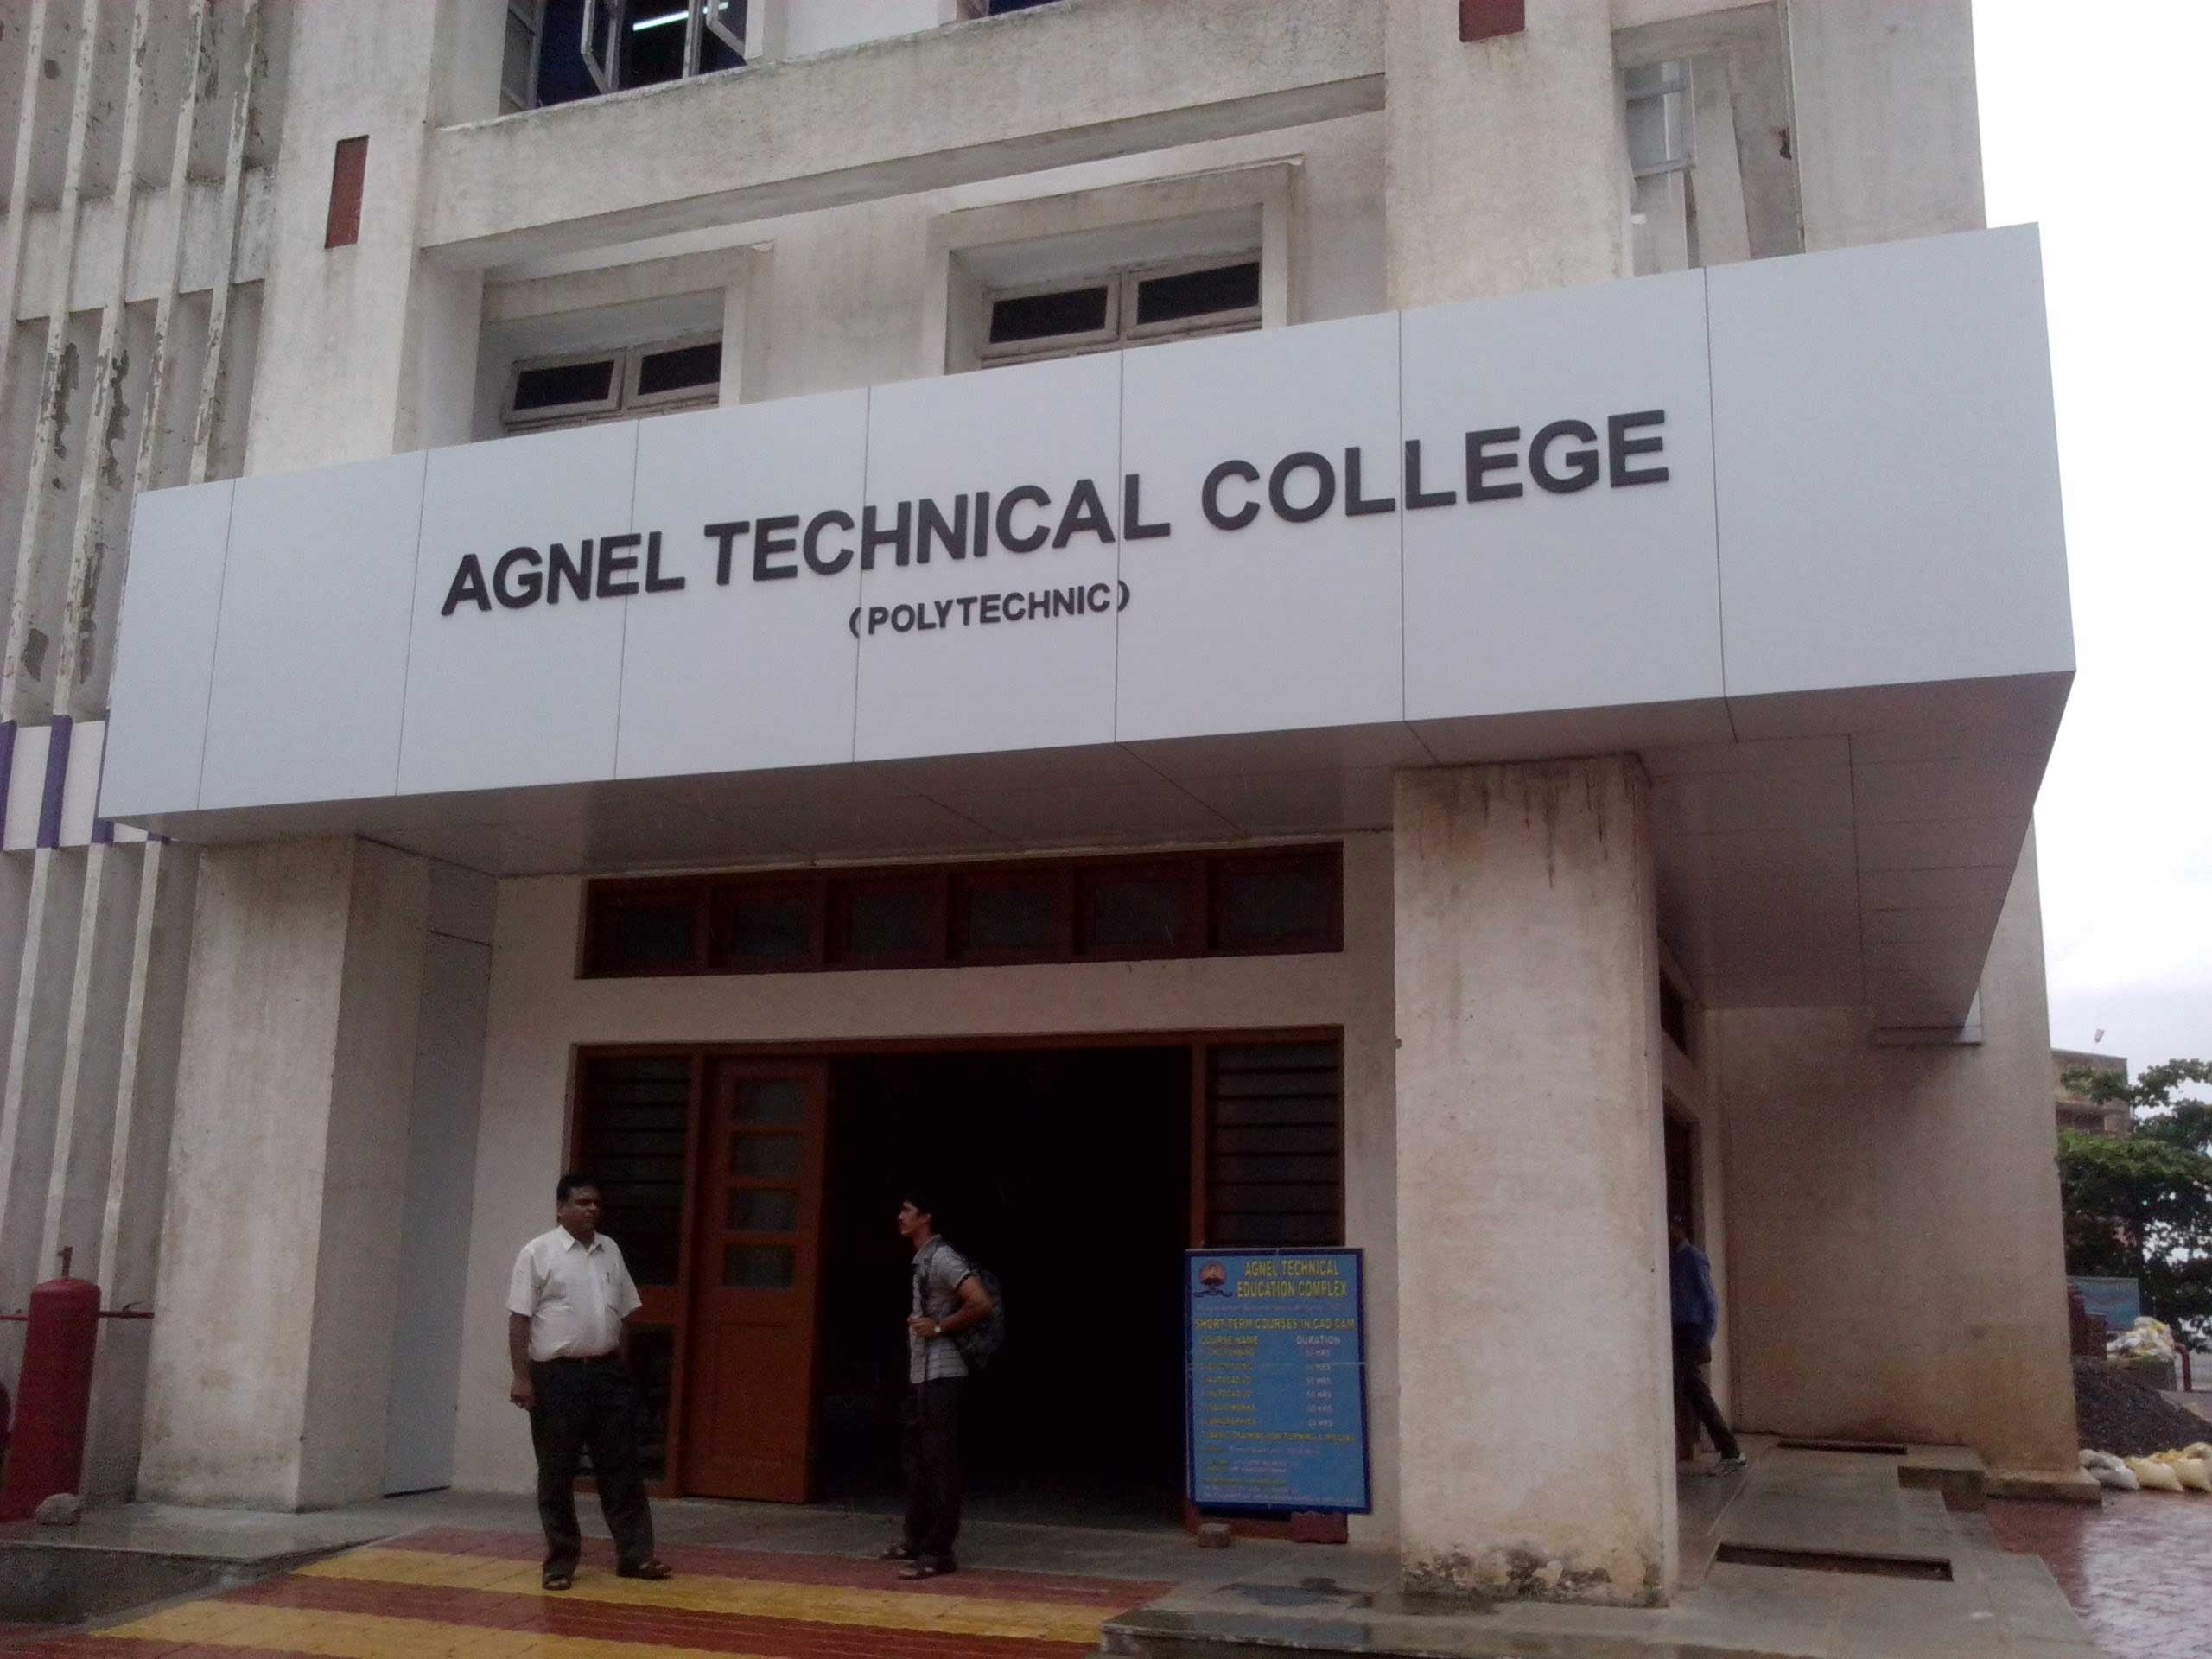 AGNEL TECHNICAL COLLEGE (POLYTECHNIC)